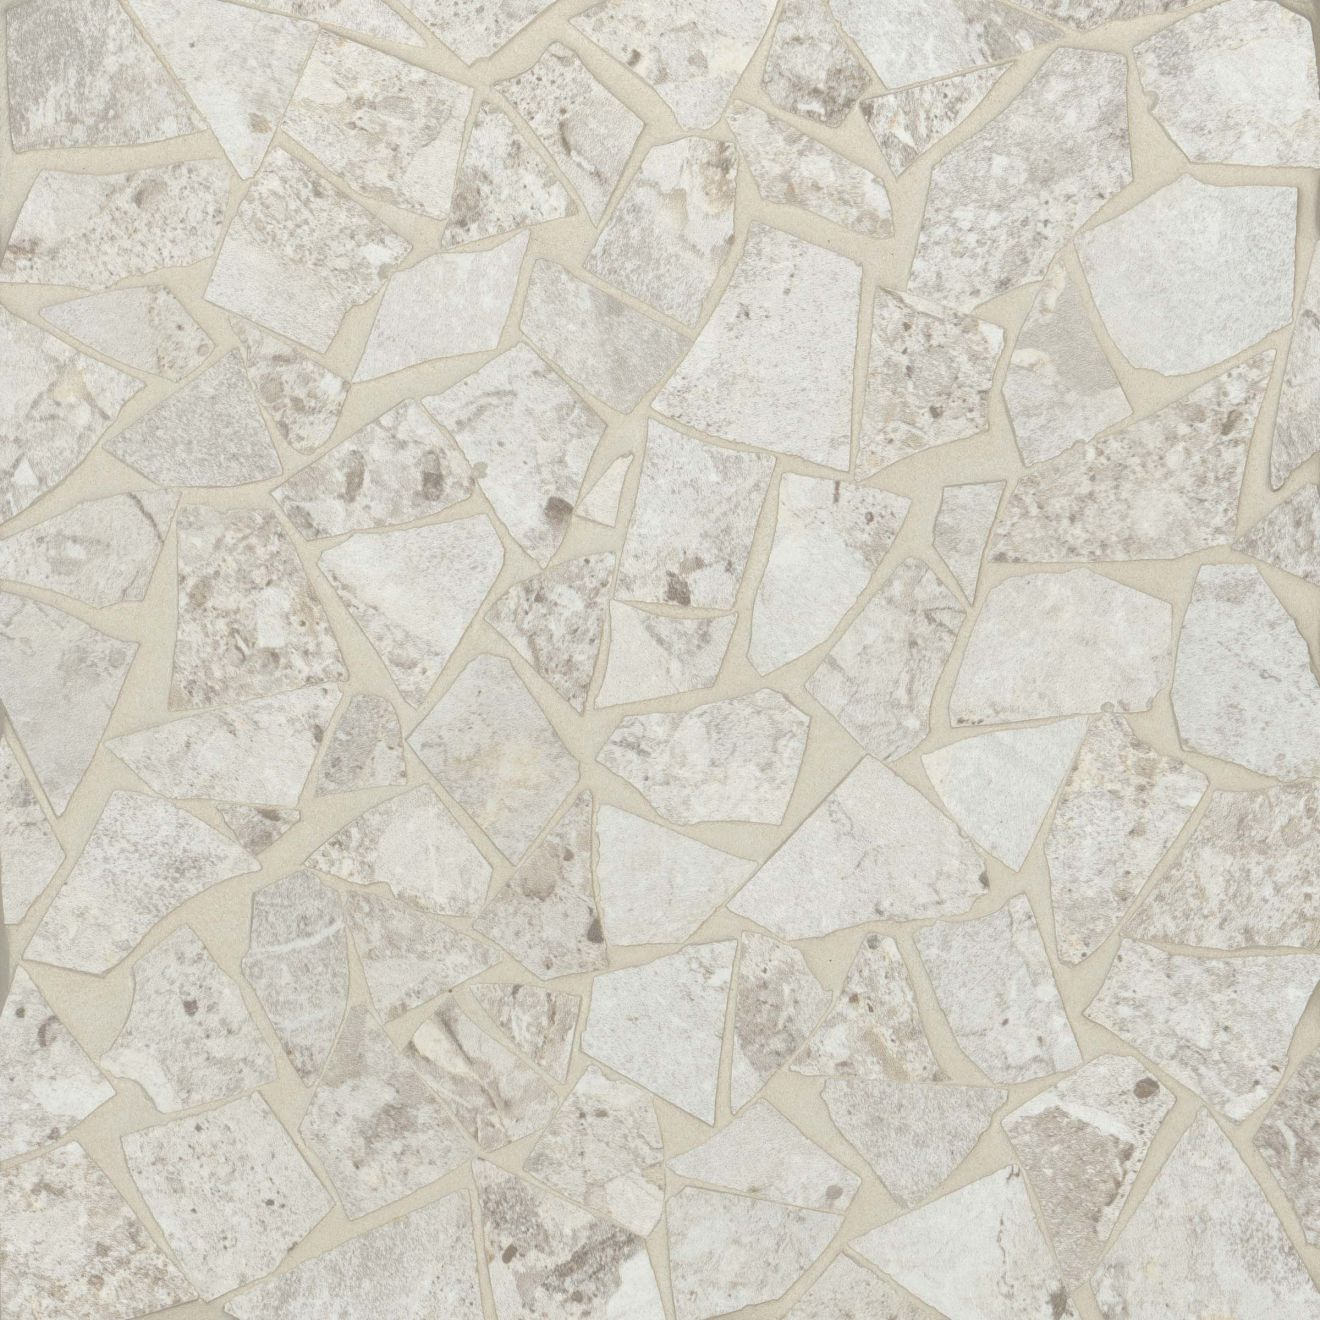 Frammenta Floor & Wall Mosaic in White